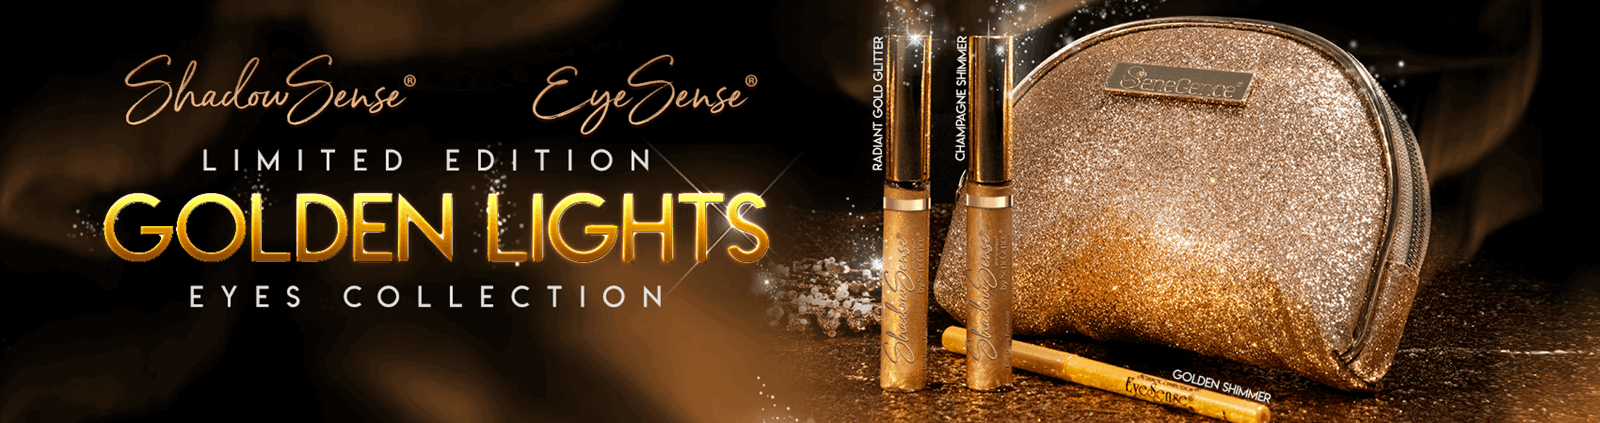 Golden Lights Eyes Collection